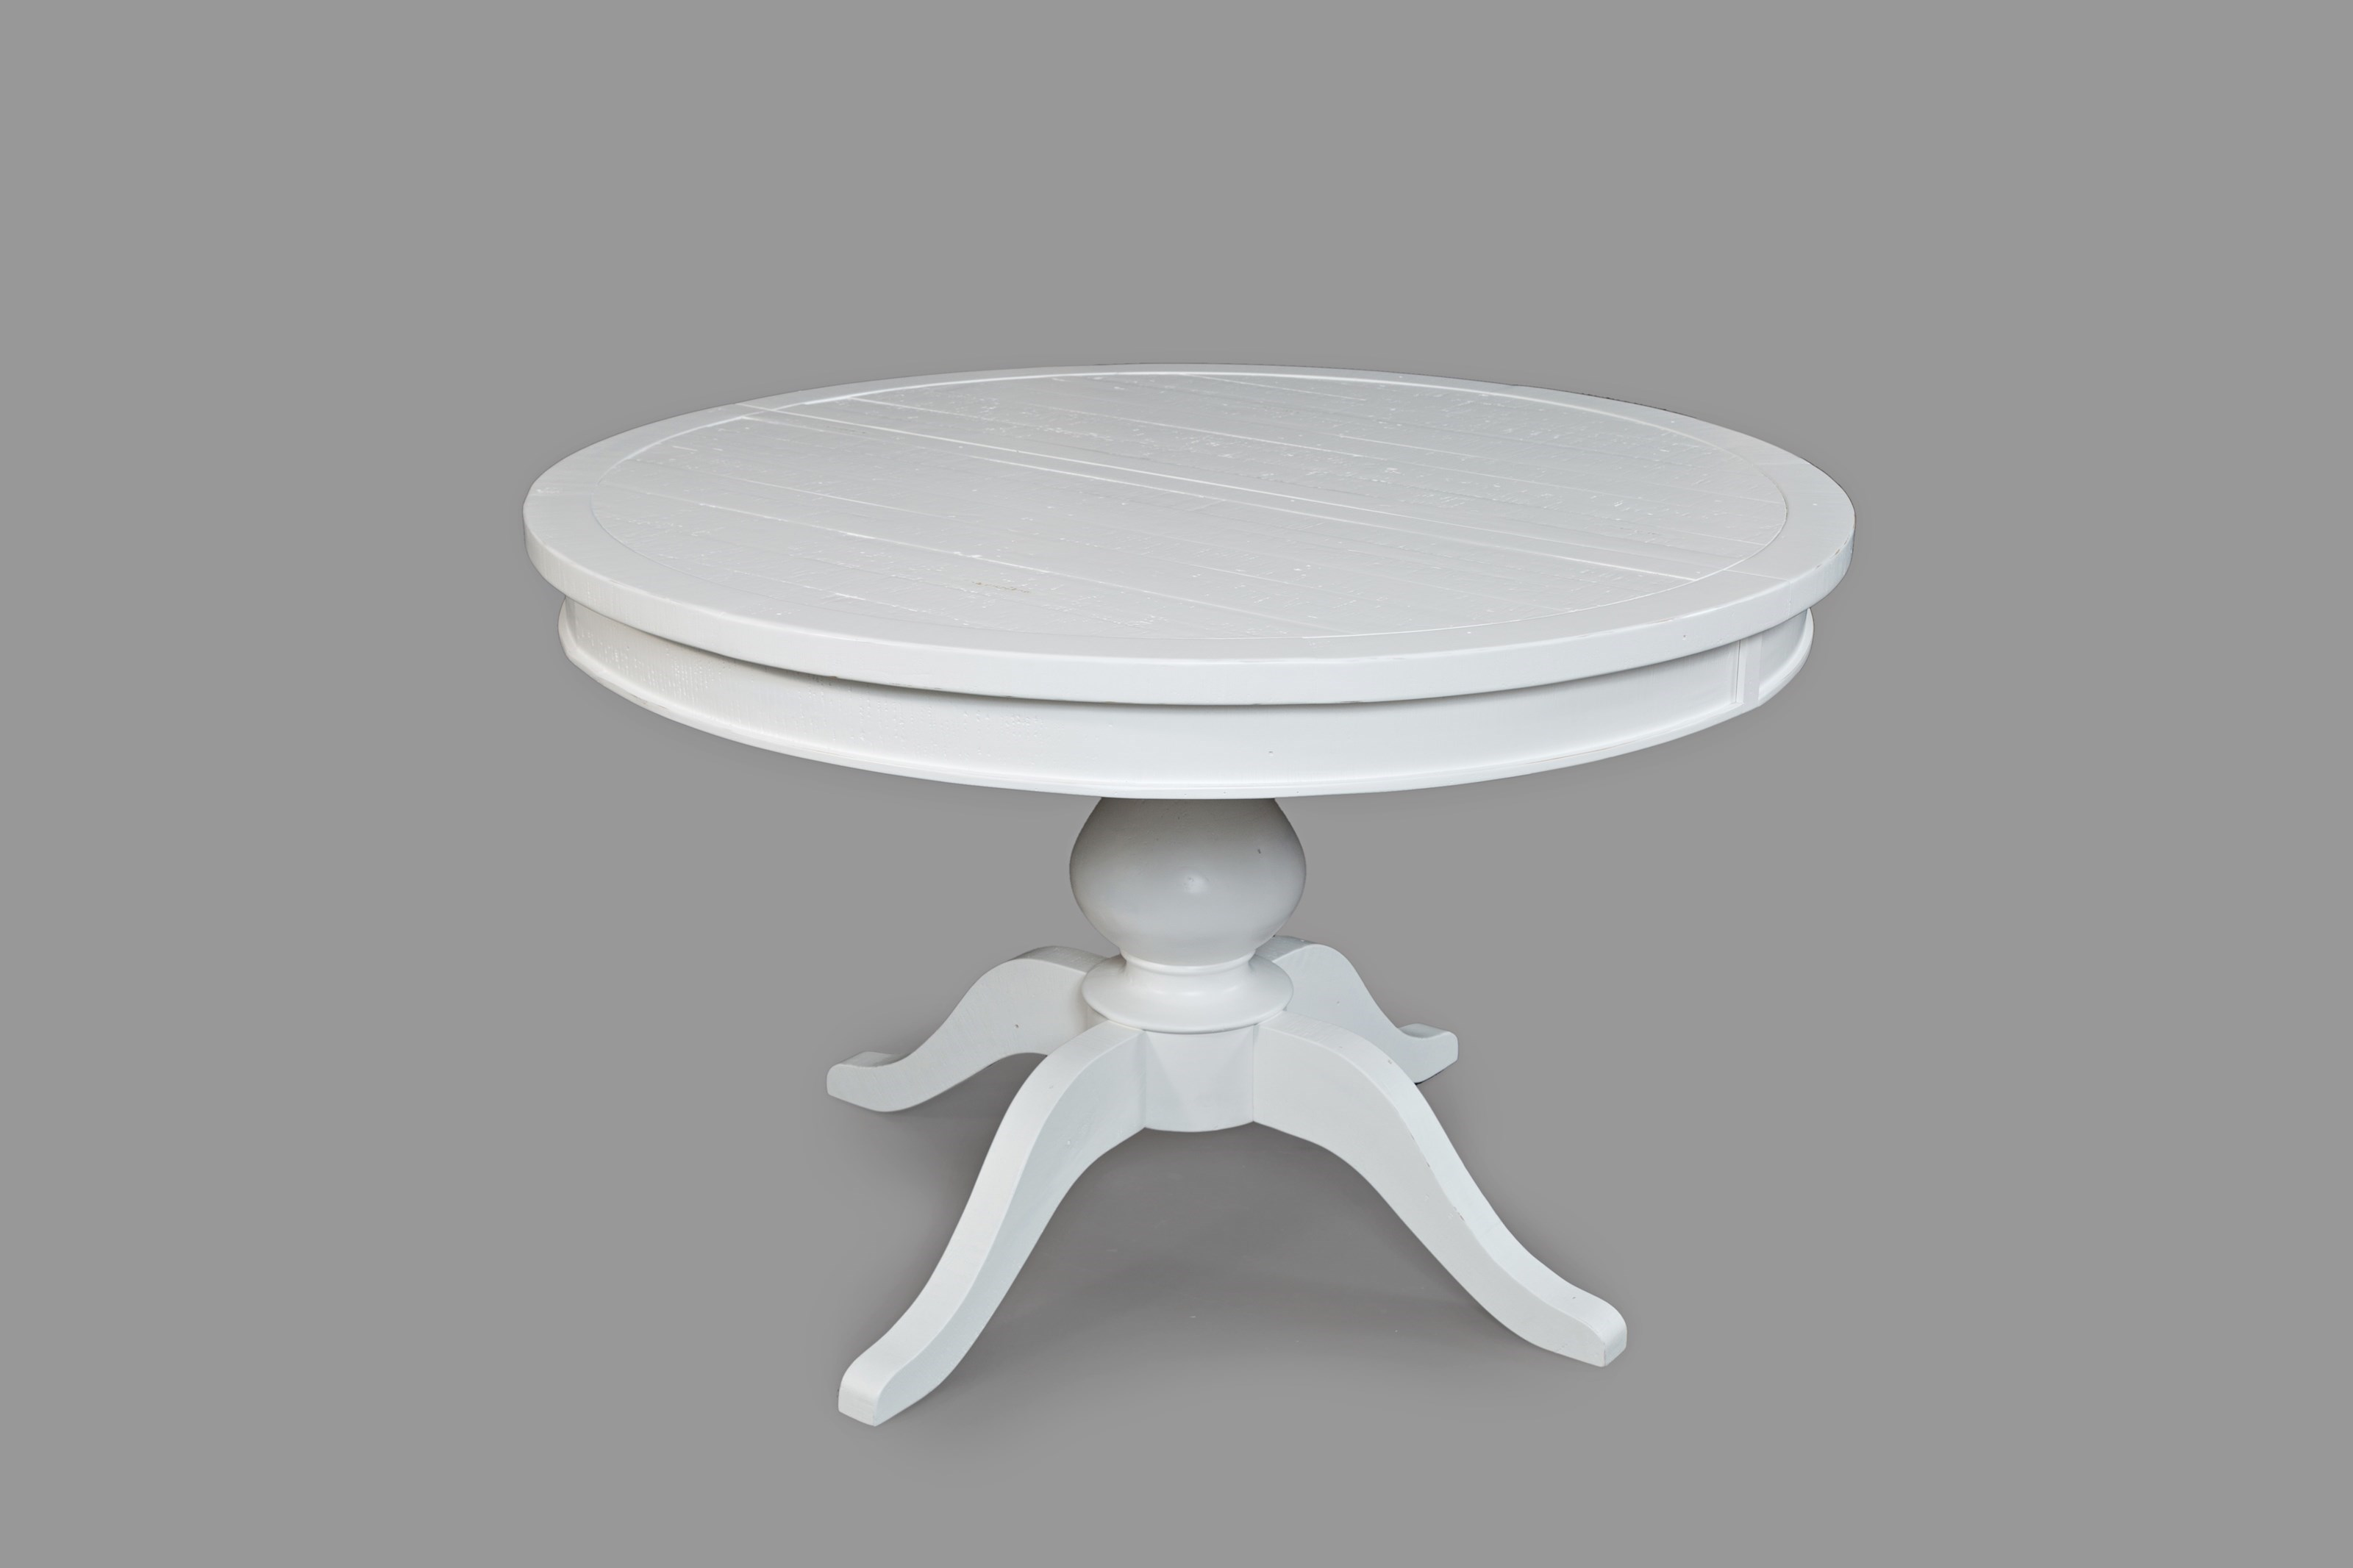 Merveilleux Jofran MadaketRound To Oval   Pedestal Dining Table ...